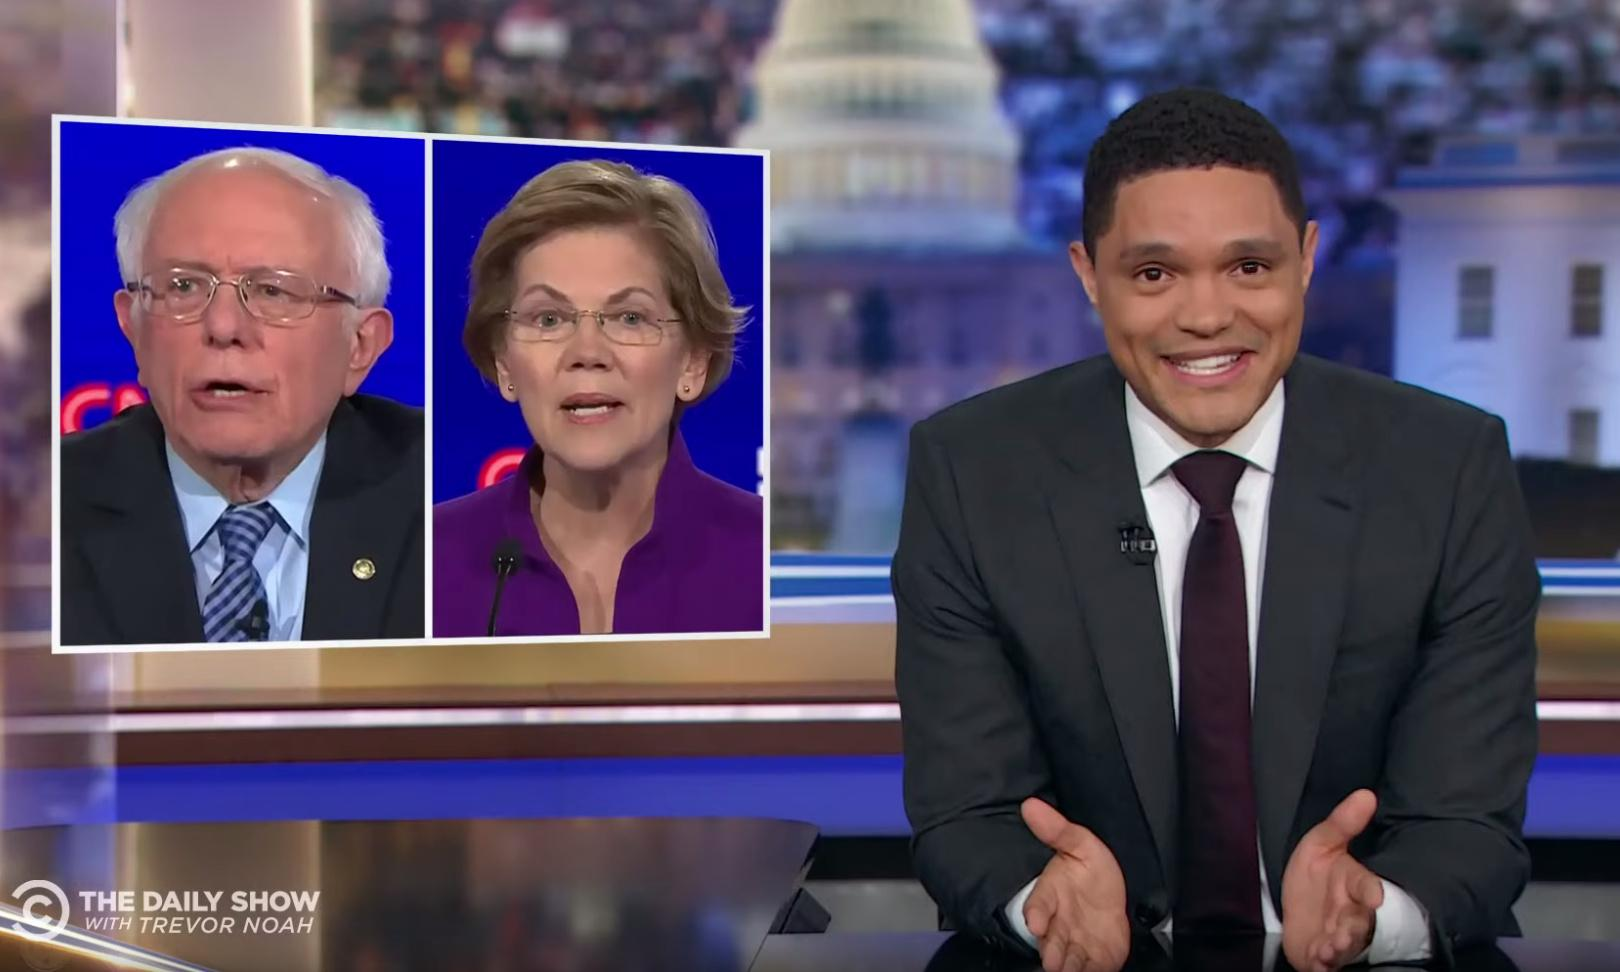 Trevor Noah on Democratic debate: 'Six candidates, all of them white'